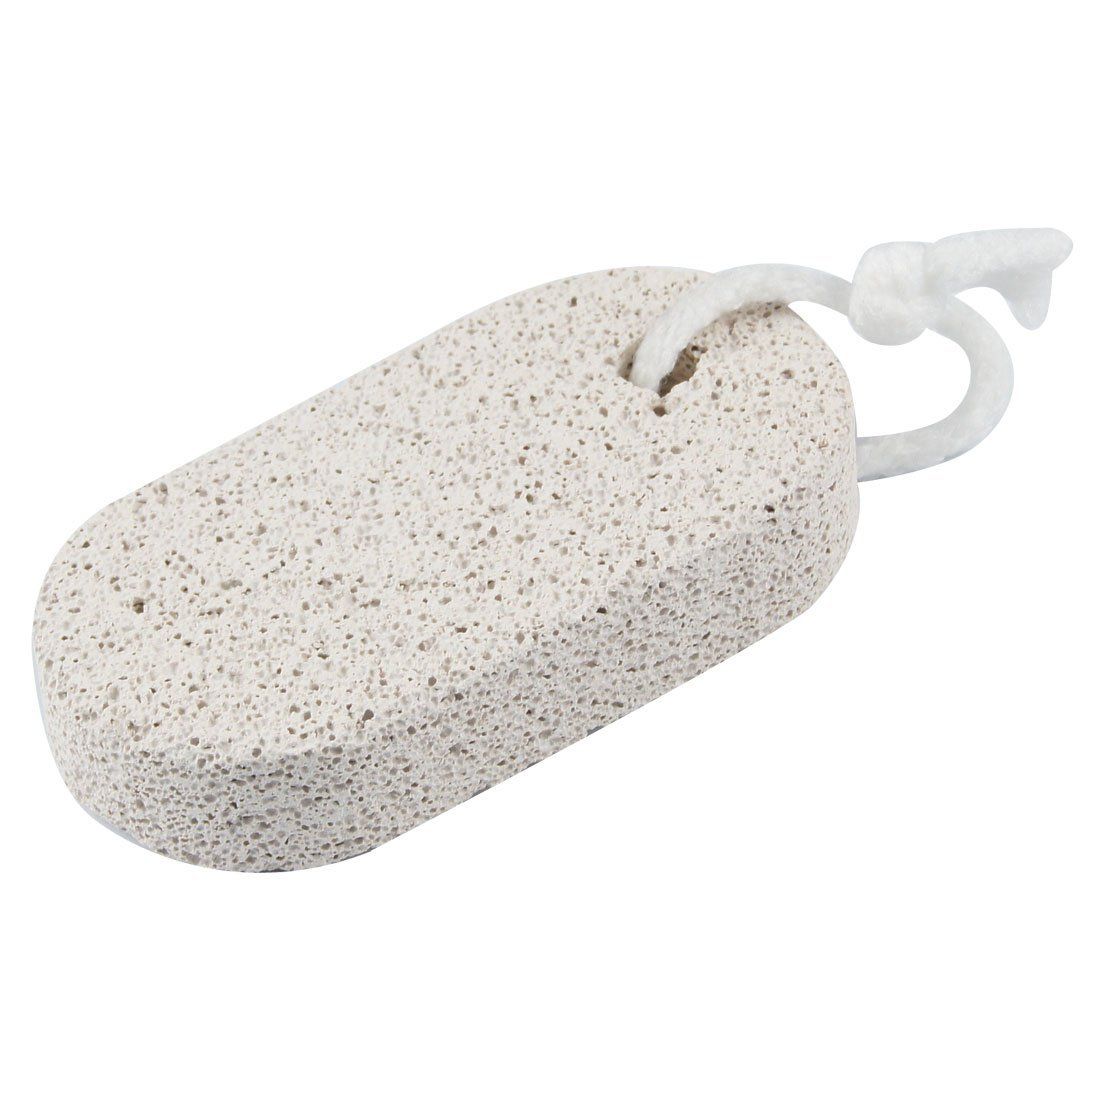 uxcell Oval Shape Pumice Stone Foot Pedicure Tool Dead Skin Remover Sanding File a12103100ux0310